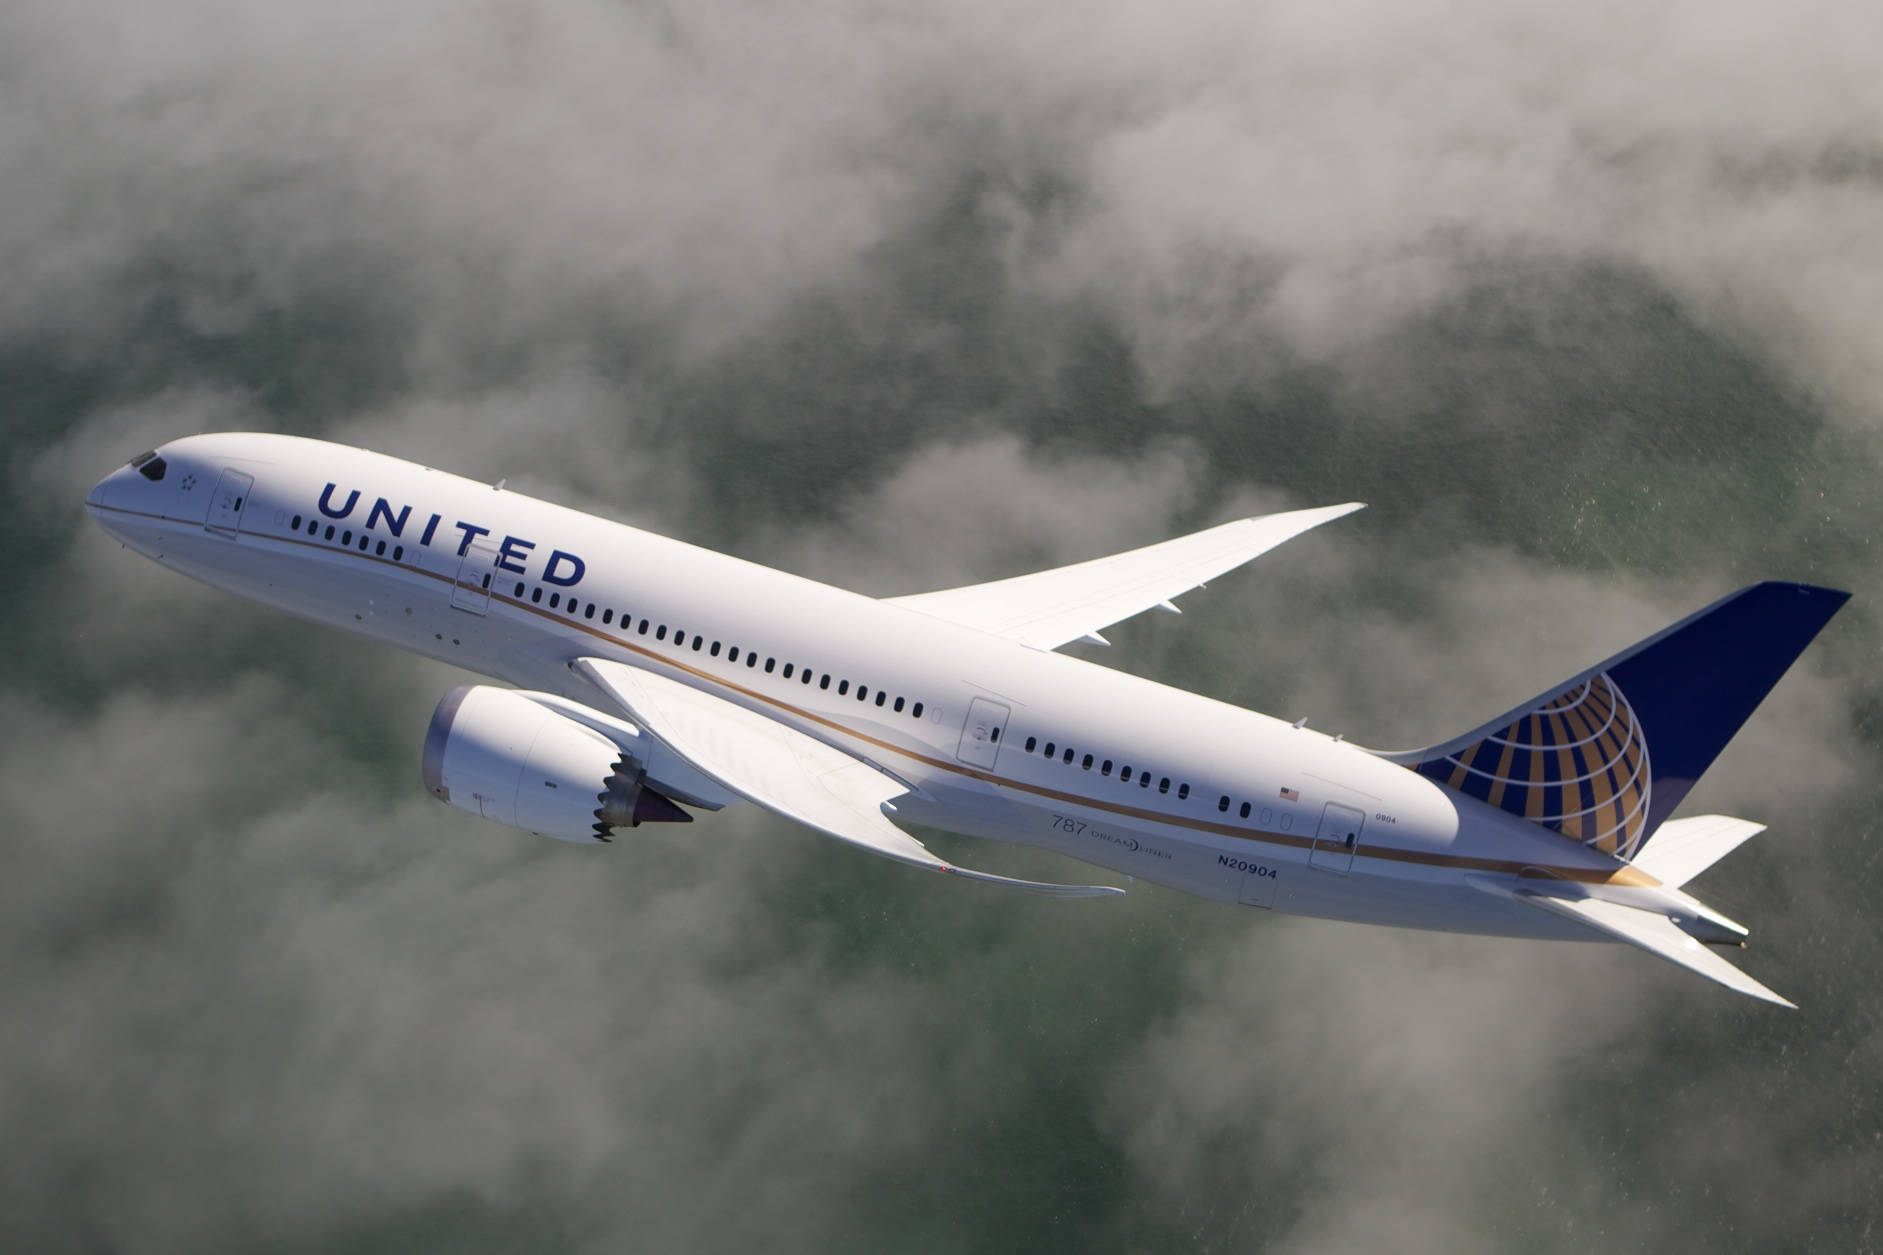 ba63303ffce359747d3c_United_787_Dreamliner_Clouds.jpg